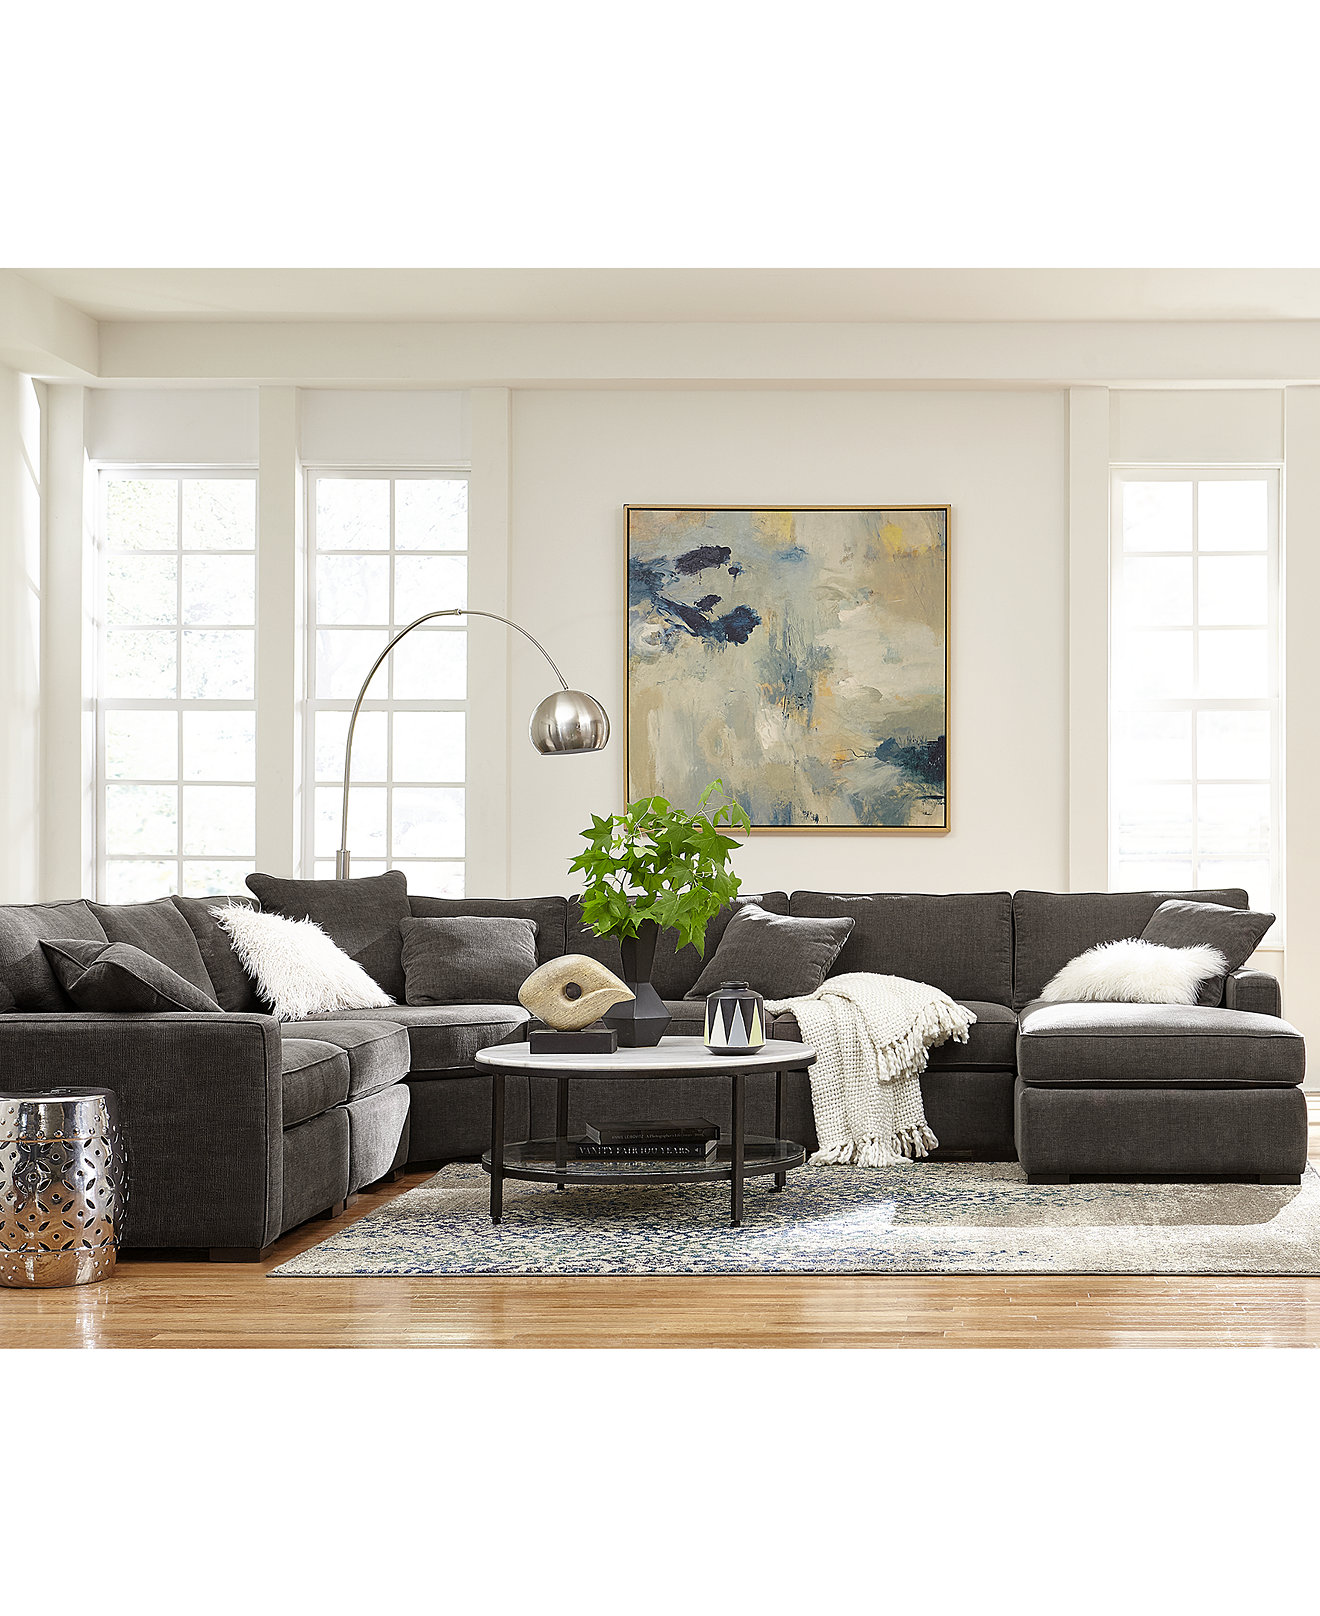 Radley Fabric Sectional Sofa Living Room Furniture Collection. Living Room Furniture Sets   Macy s